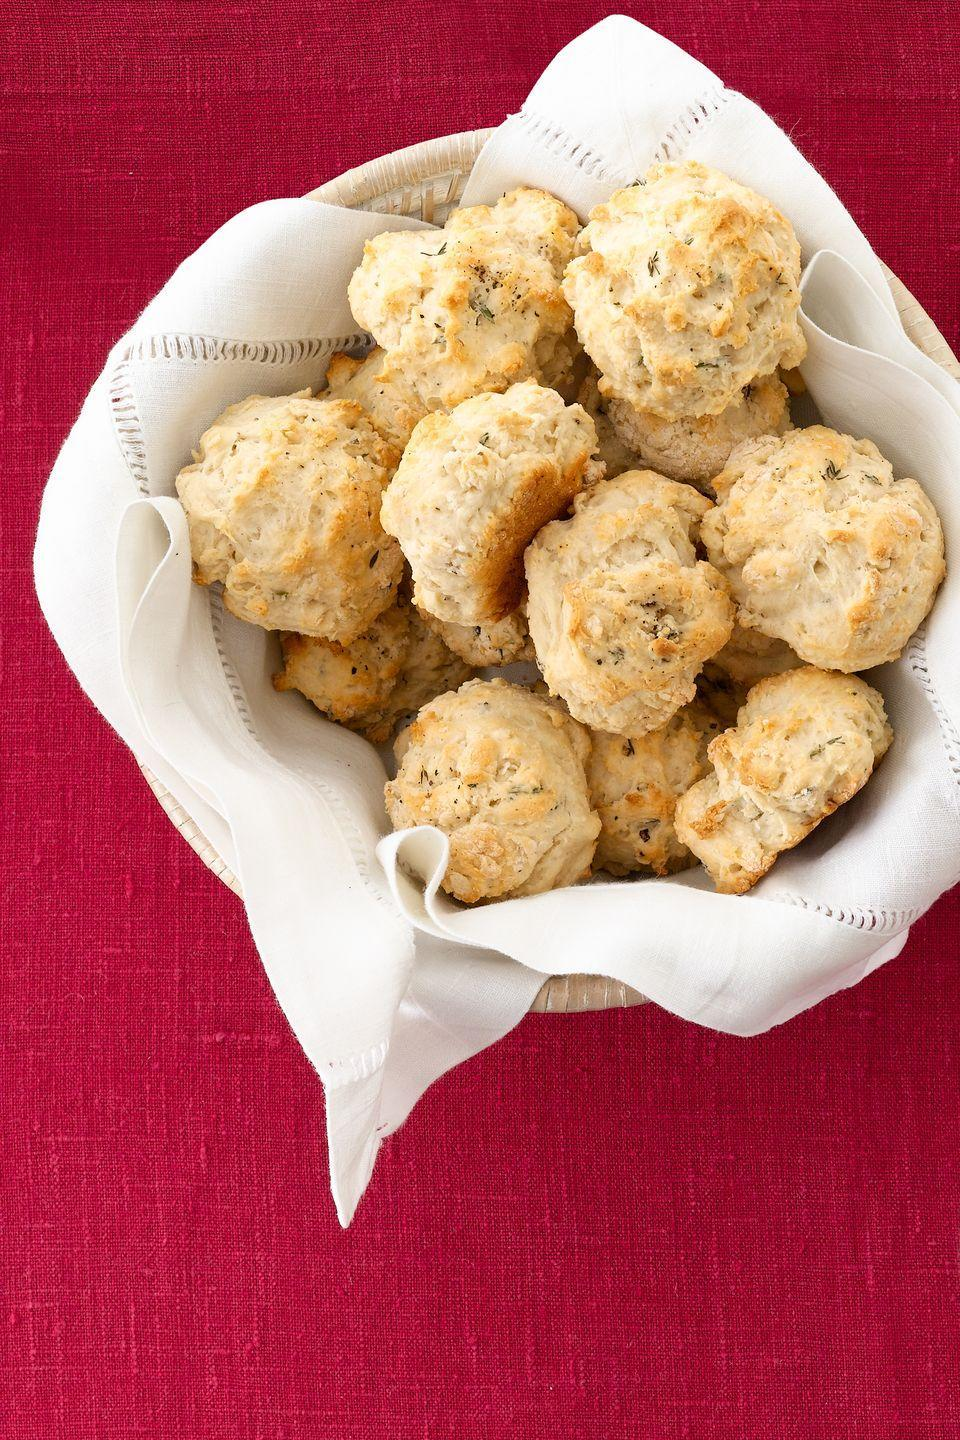 """<p>Store the biscuits at room temperature in an airtight container for one week. The butter can be refrigerated for up to two weeks. Warm before serving, to make them extra mouthwatering.</p><p><em><strong><a href=""""https://www.womansday.com/food-recipes/food-drinks/recipes/a12087/thyme-biscuits-honey-thyme-butter-recipe-wdy1112/"""" rel=""""nofollow noopener"""" target=""""_blank"""" data-ylk=""""slk:Get the Thyme Biscuits with Honey-Thyme Butter recipe"""" class=""""link rapid-noclick-resp"""">Get the Thyme Biscuits with Honey-Thyme Butter recipe</a>.</strong></em><br></p>"""